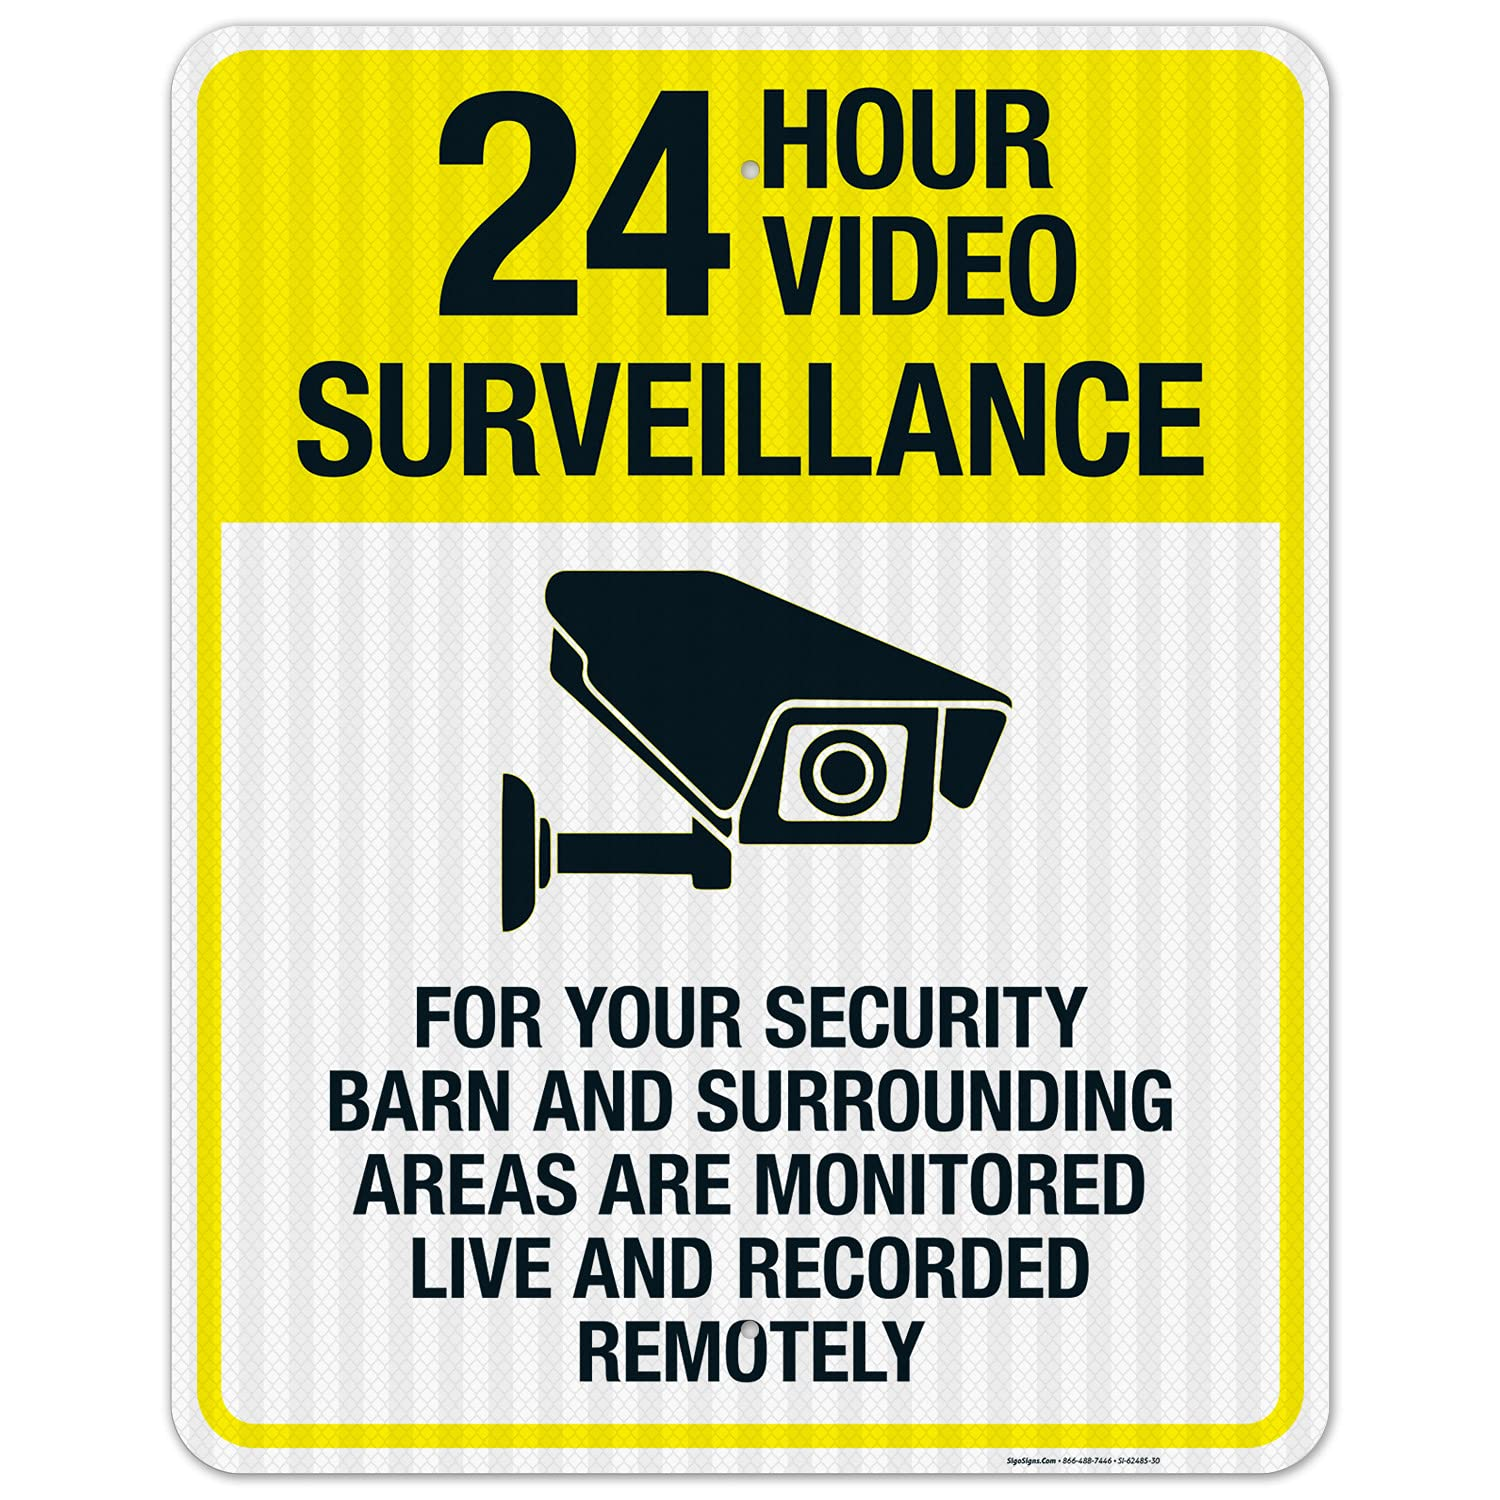 for Your Security Barn and Finally resale start Monitored 100% quality warranty! Areas Surrounding Live are